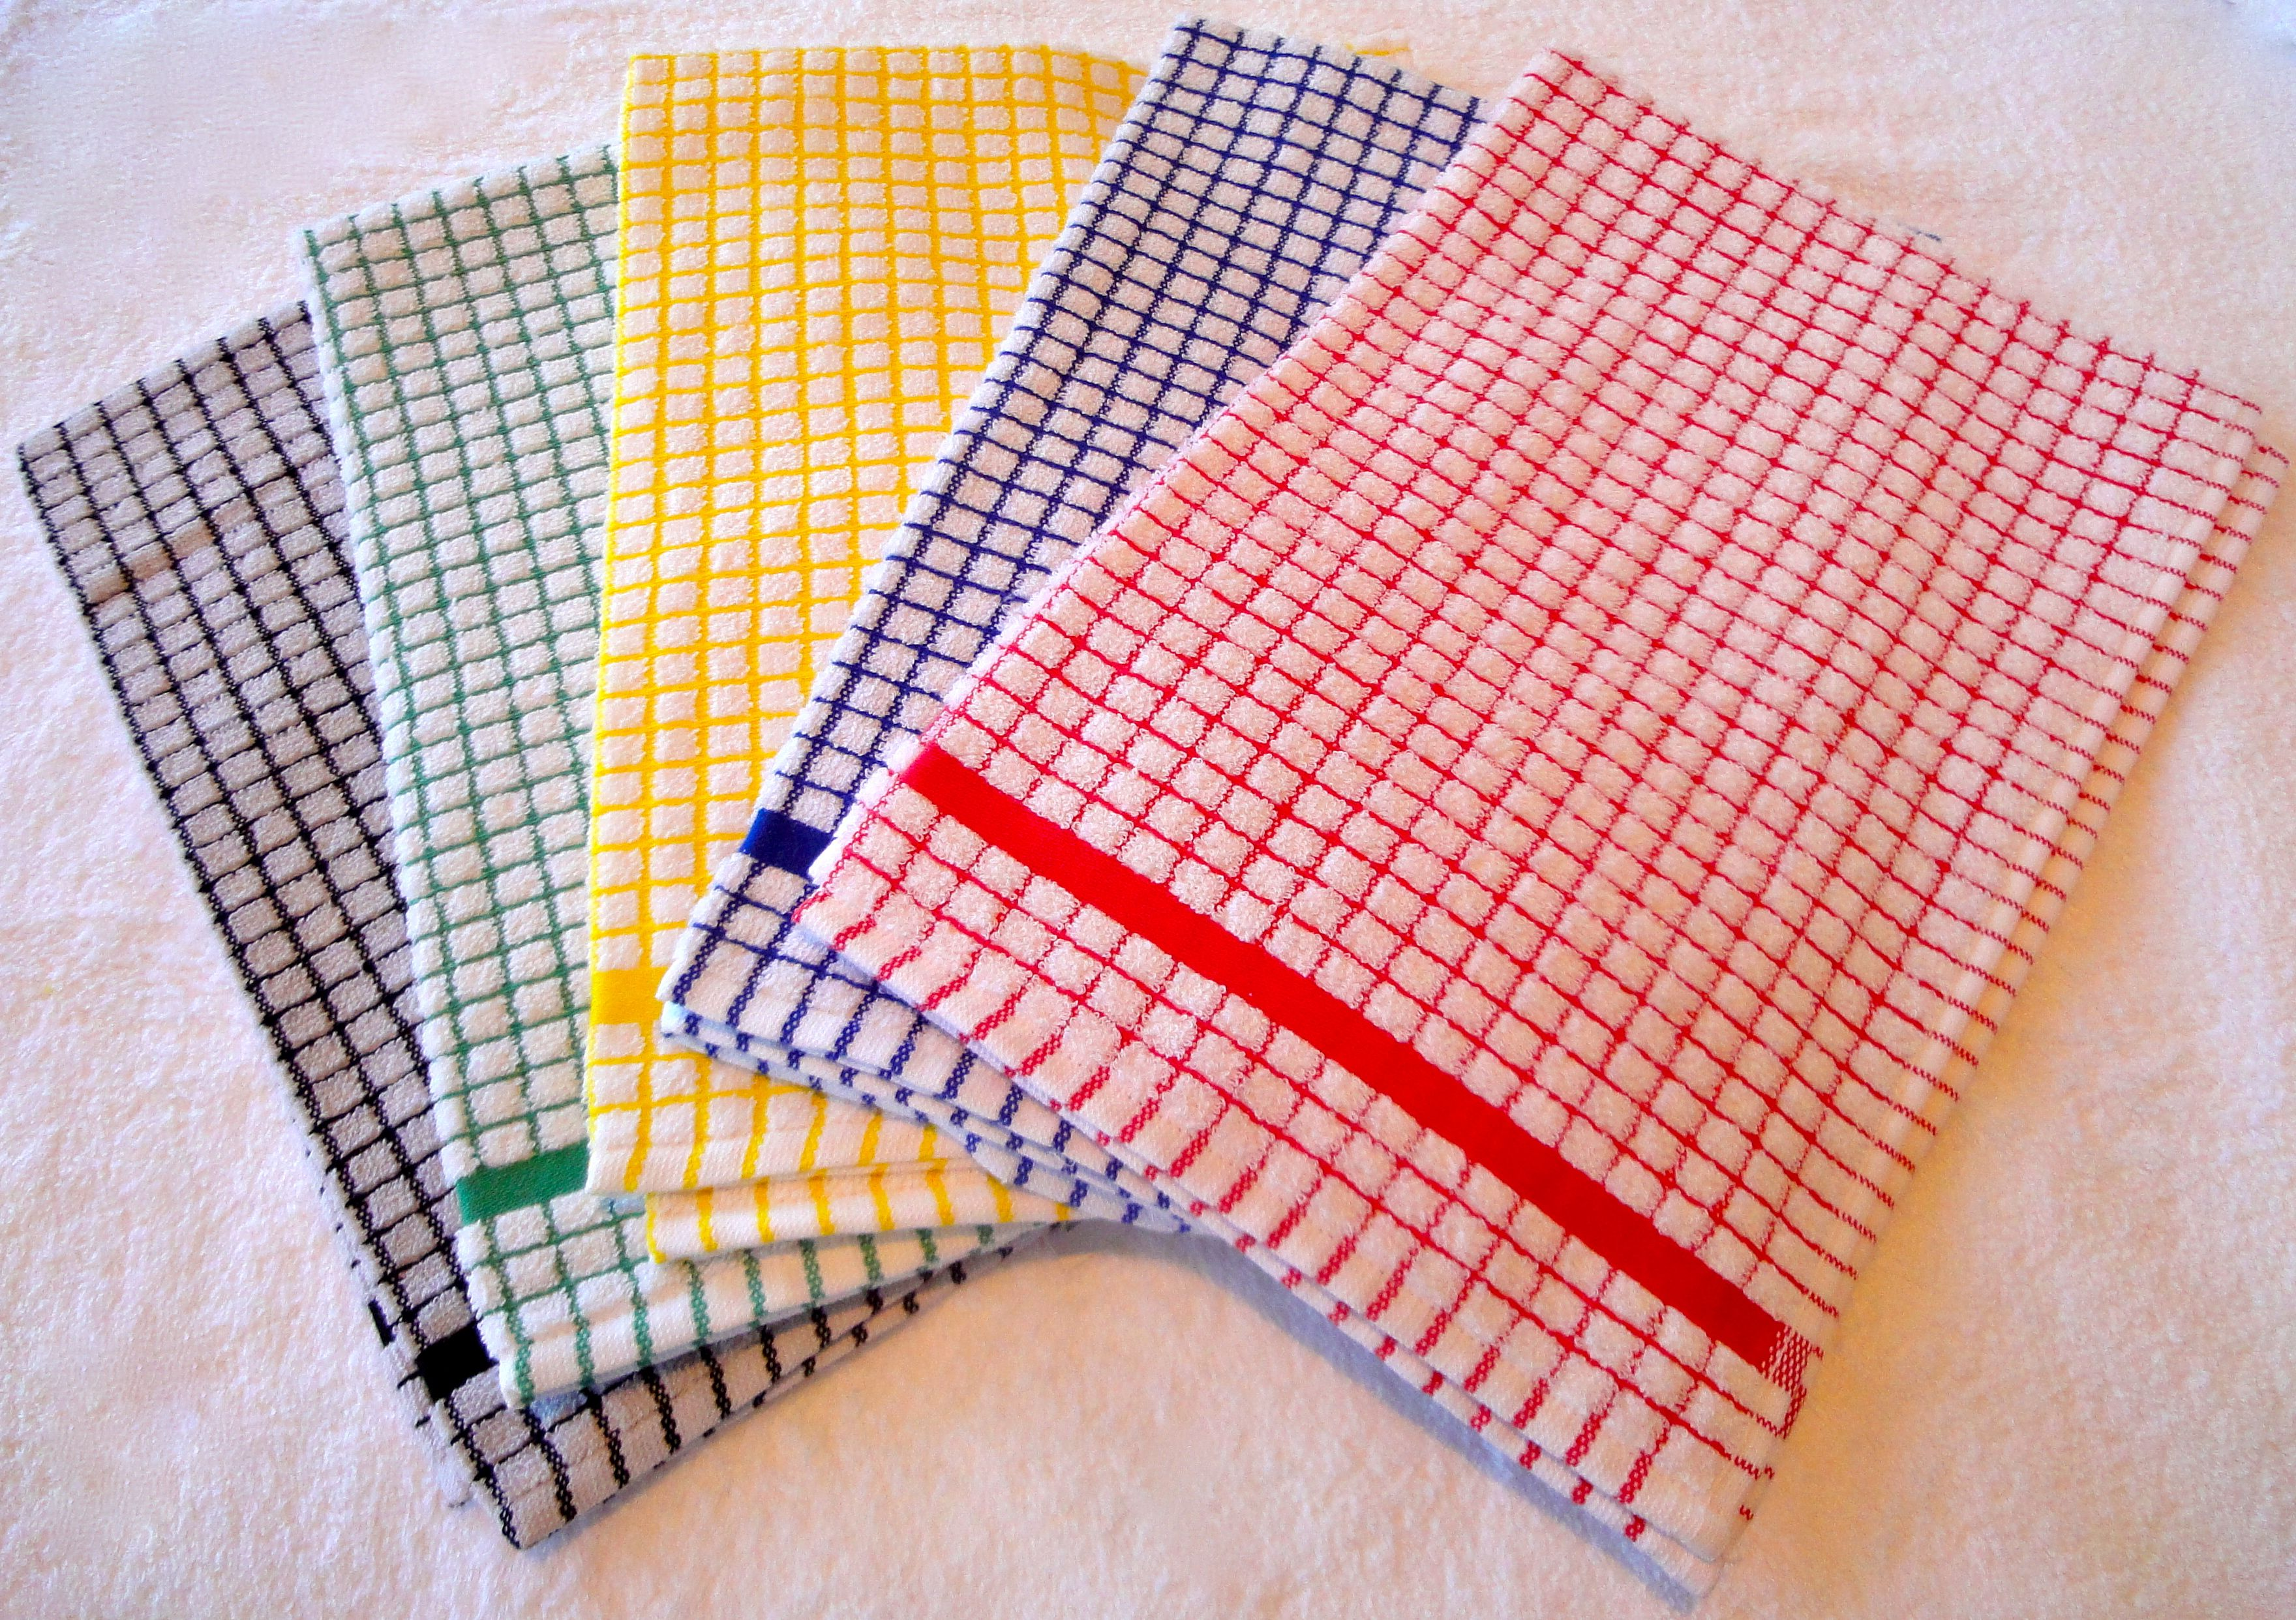 At Ewash You Can The Best Kitchen Towels Online Highly Compeive Prices